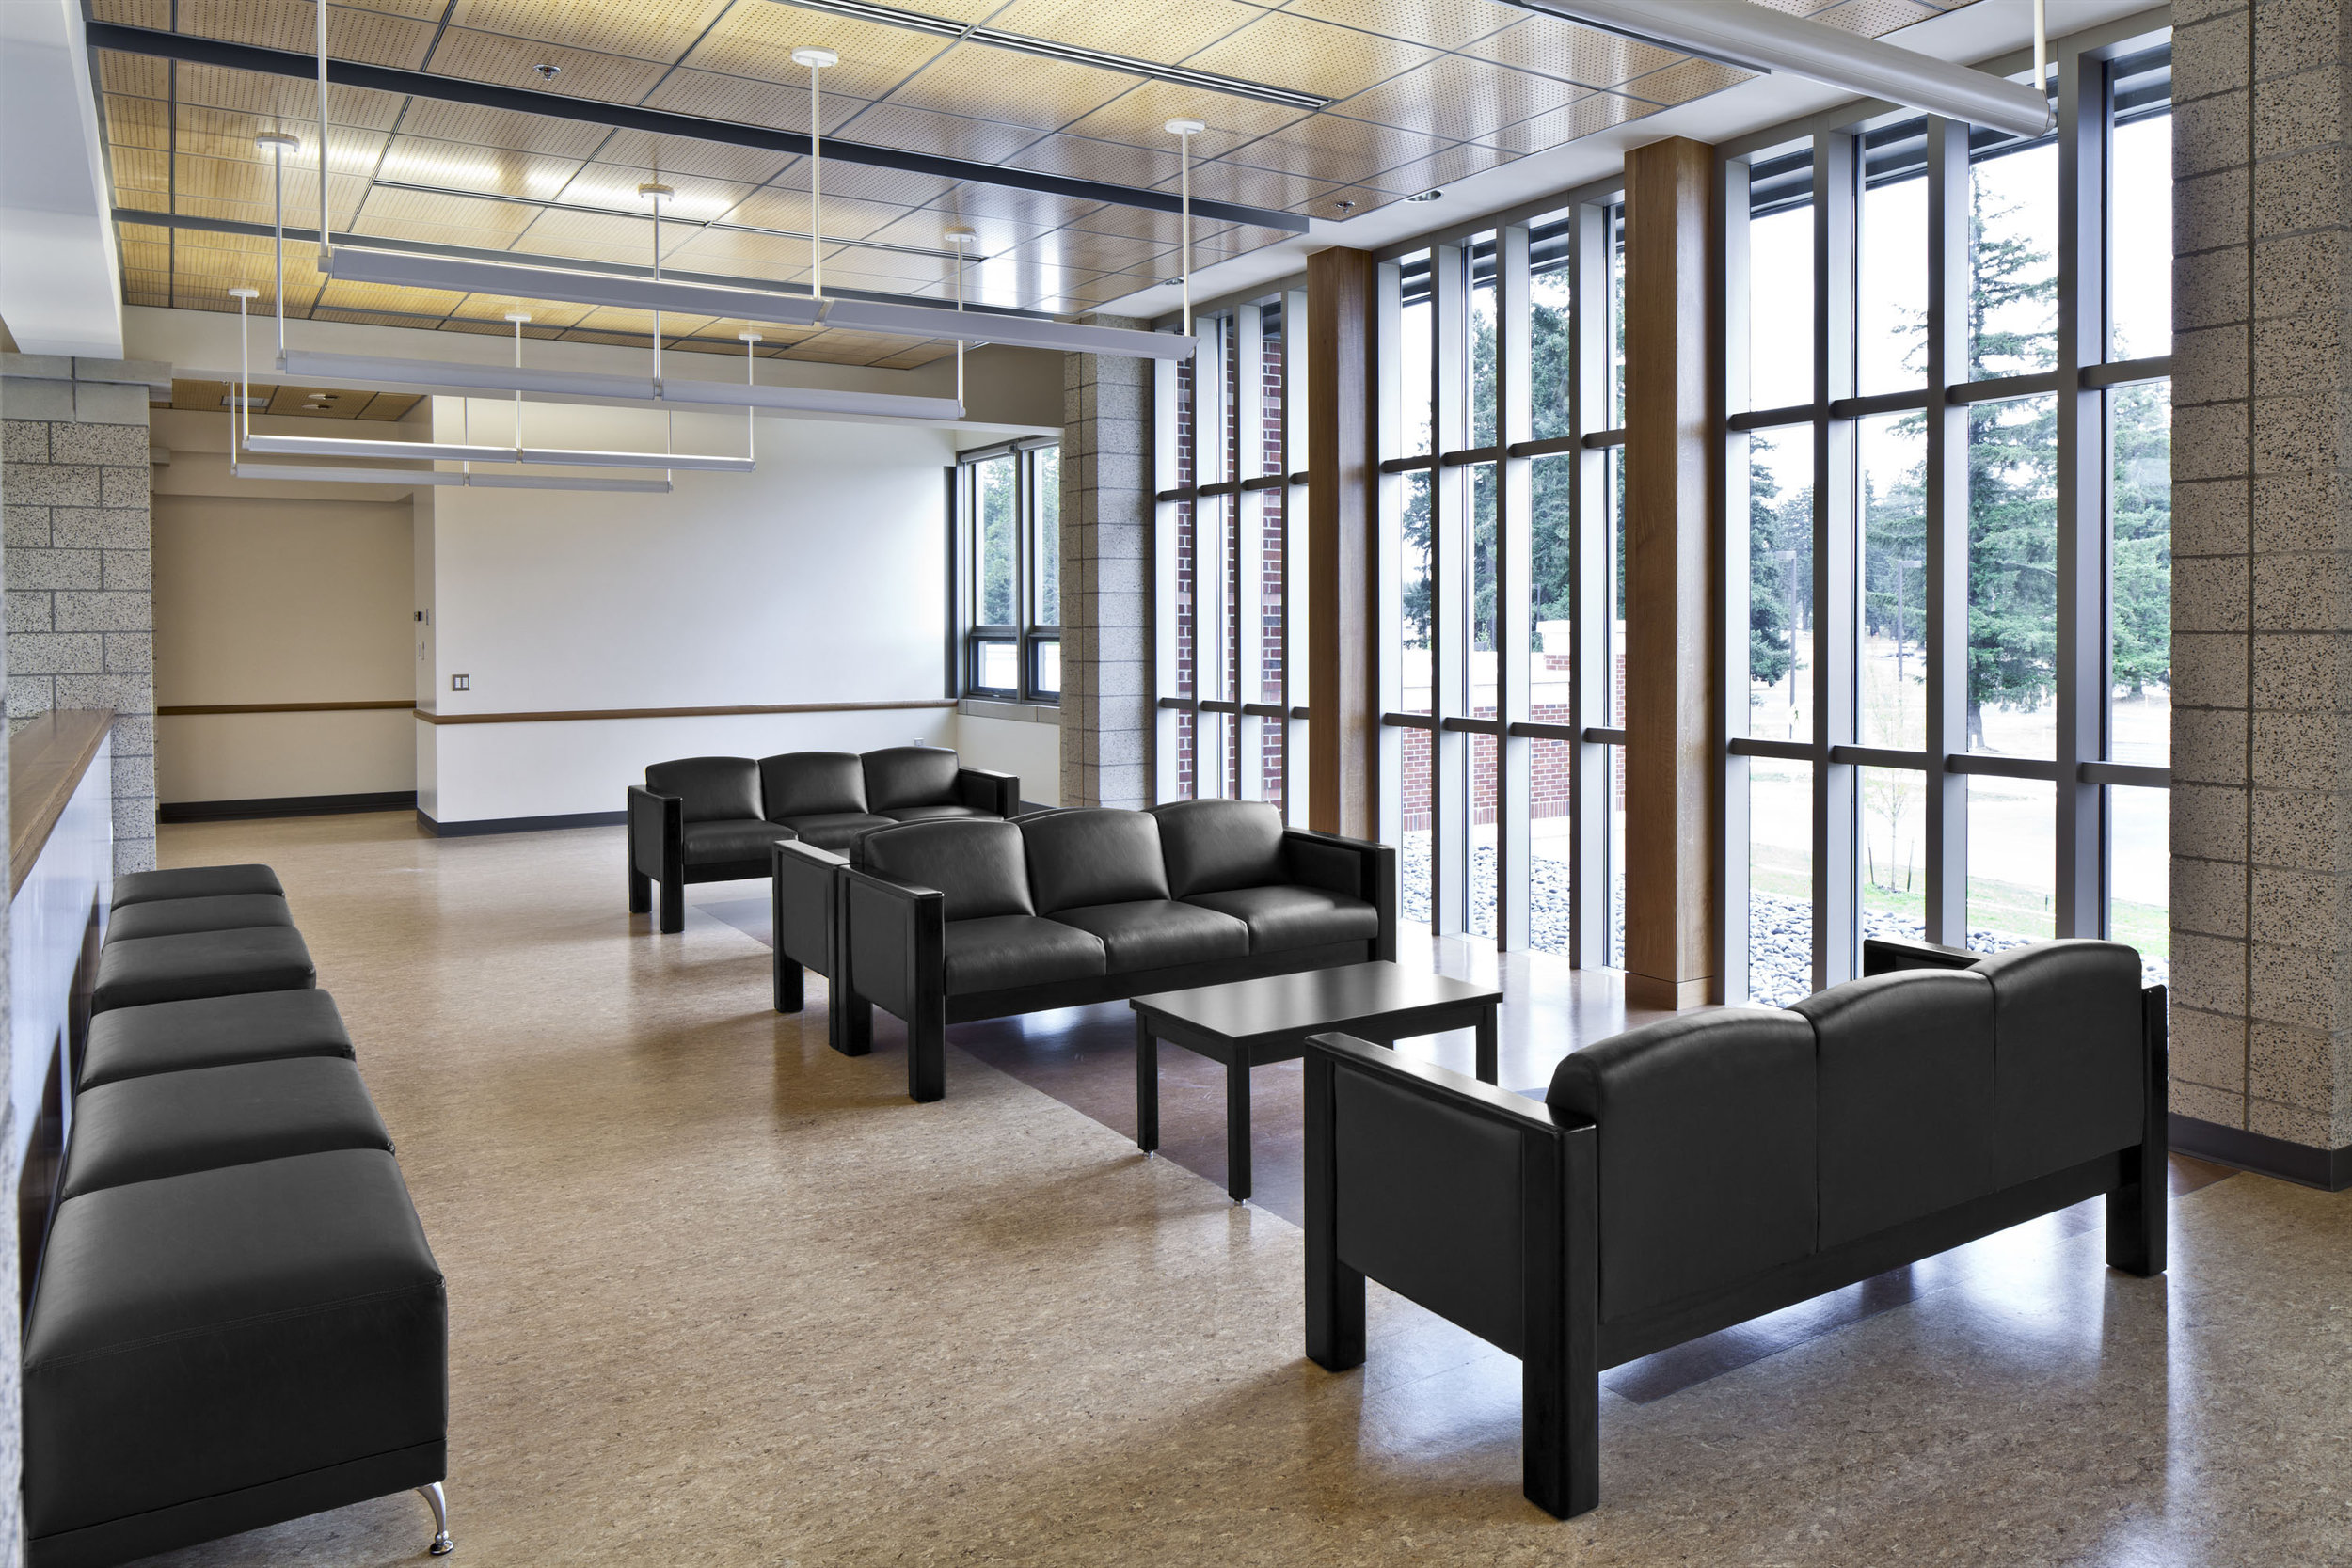 Fort Lewis 211 black chairs.jpg